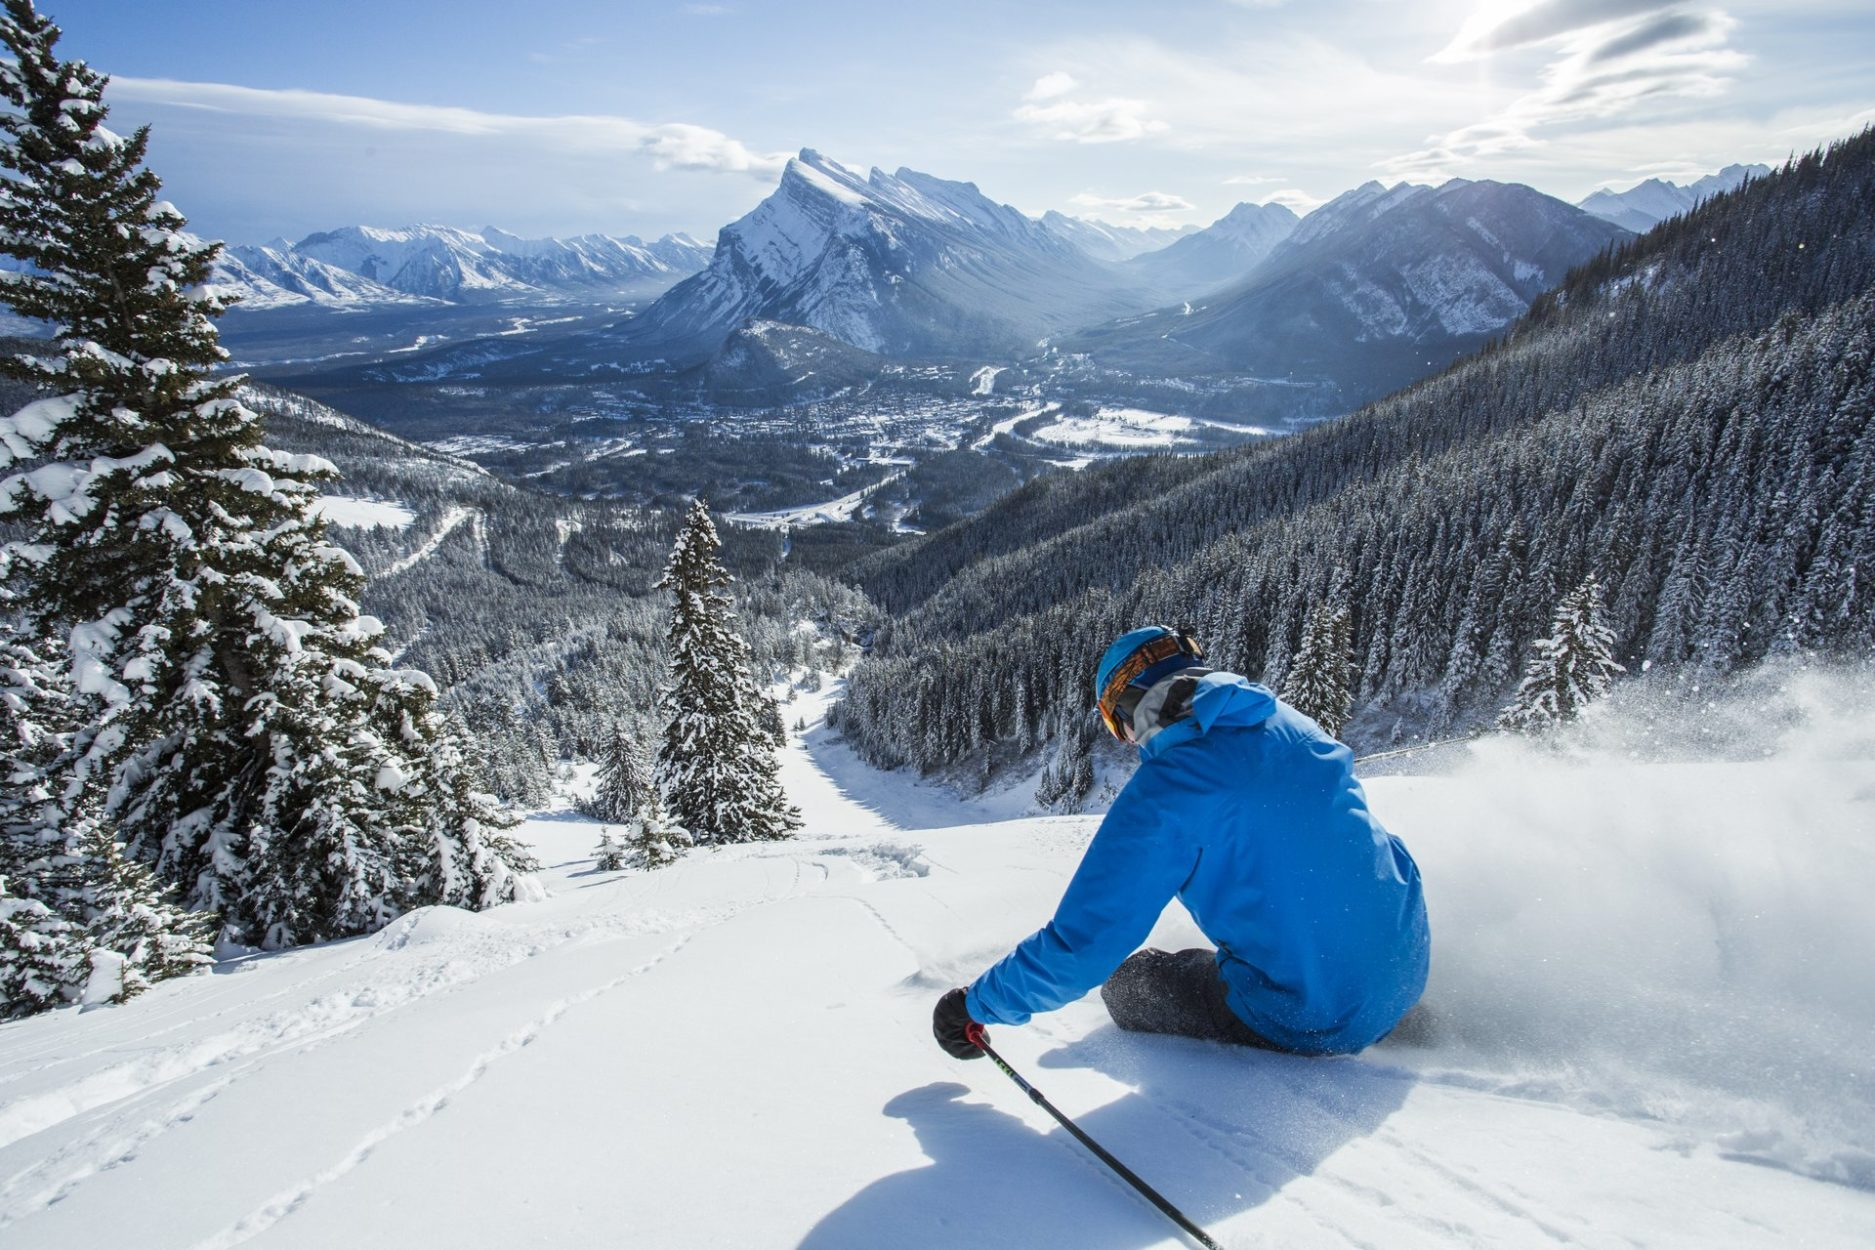 Canadian Rockies Ski Guide: Unleash Your Potential Main Photo